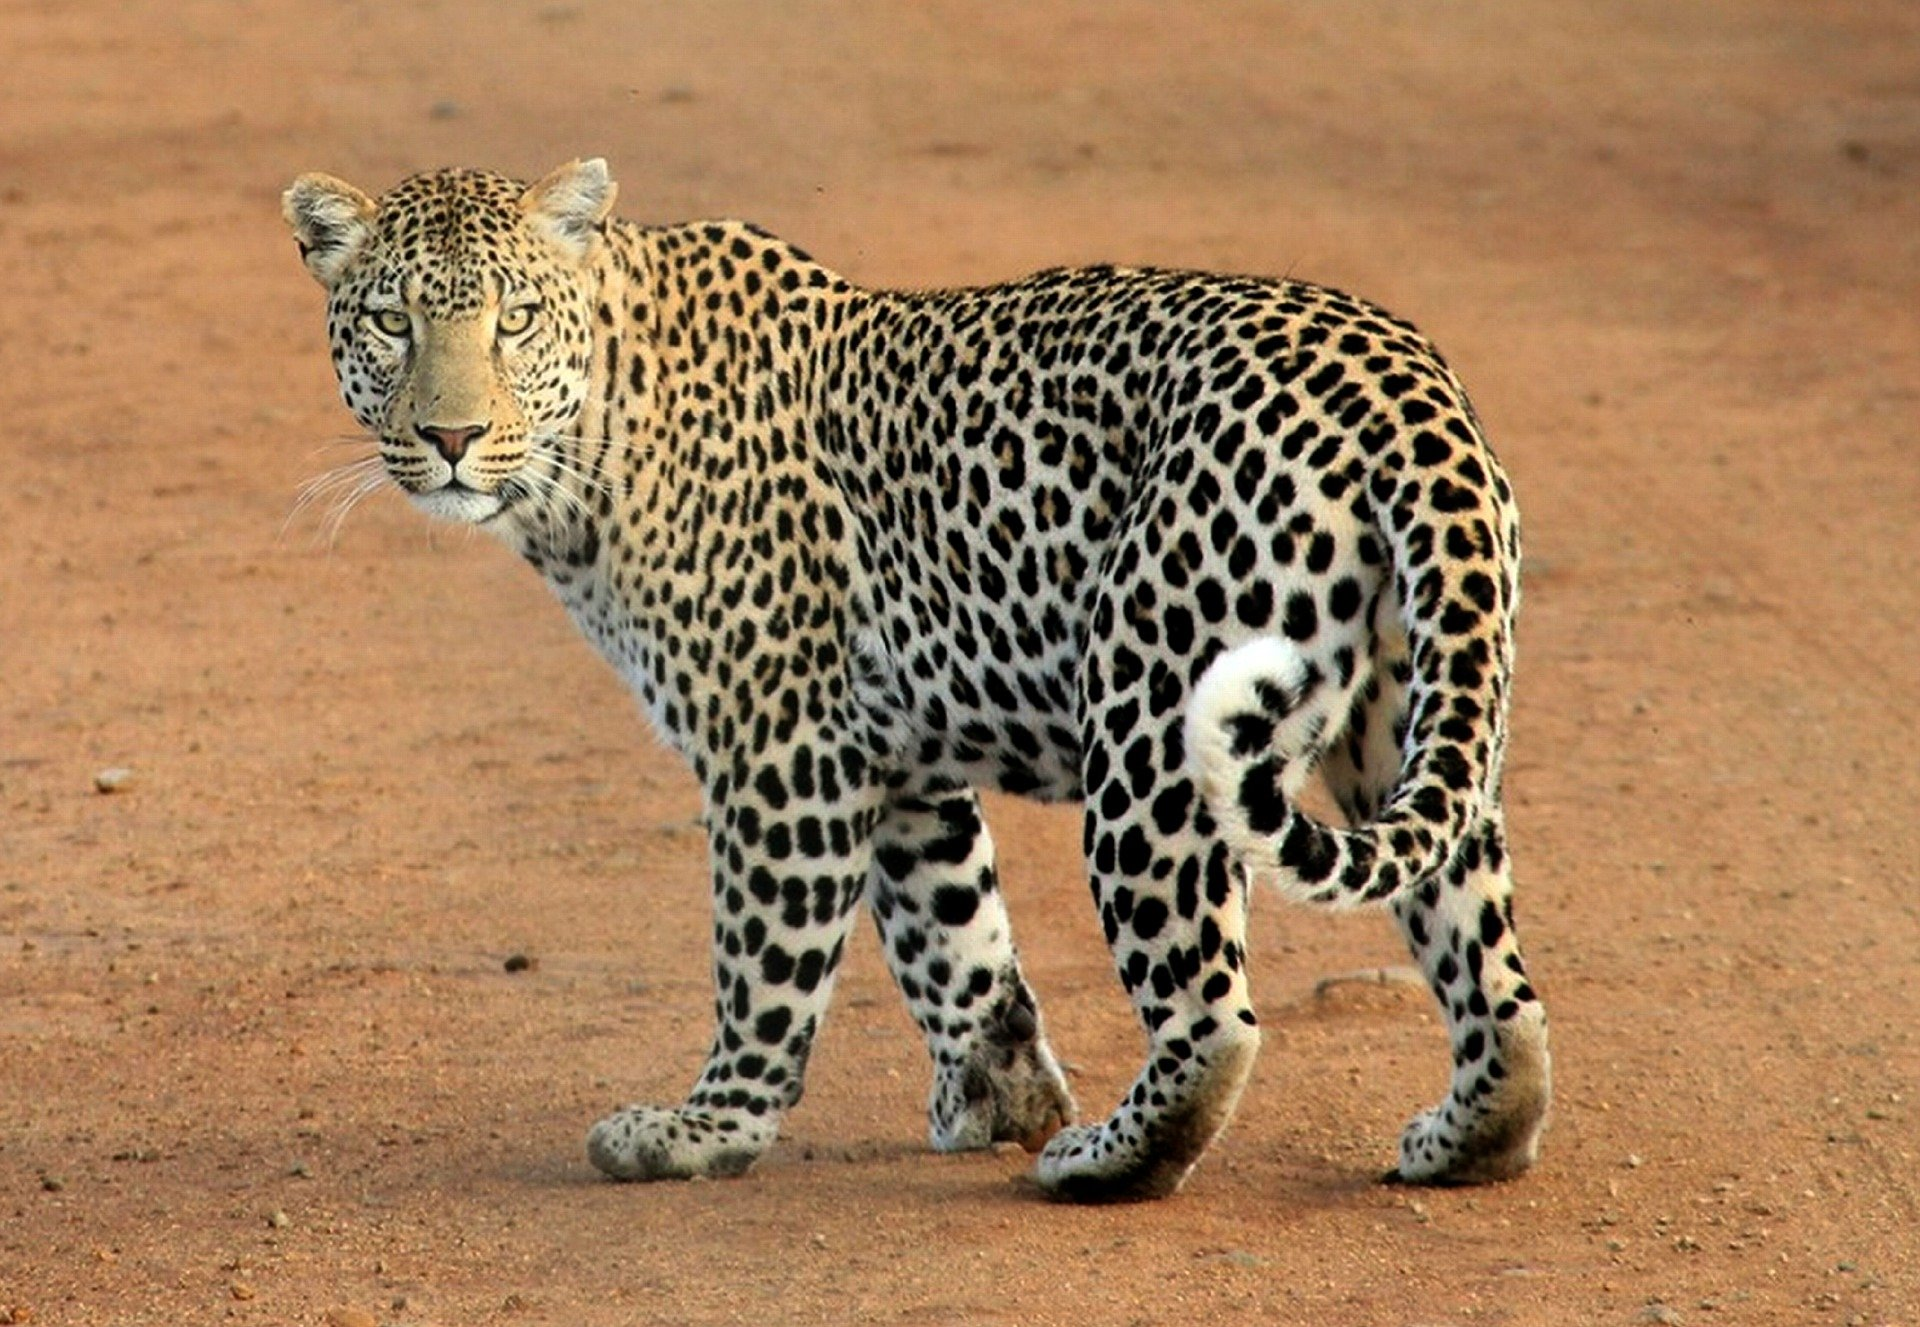 Leopard, Leopard Standing, Panther